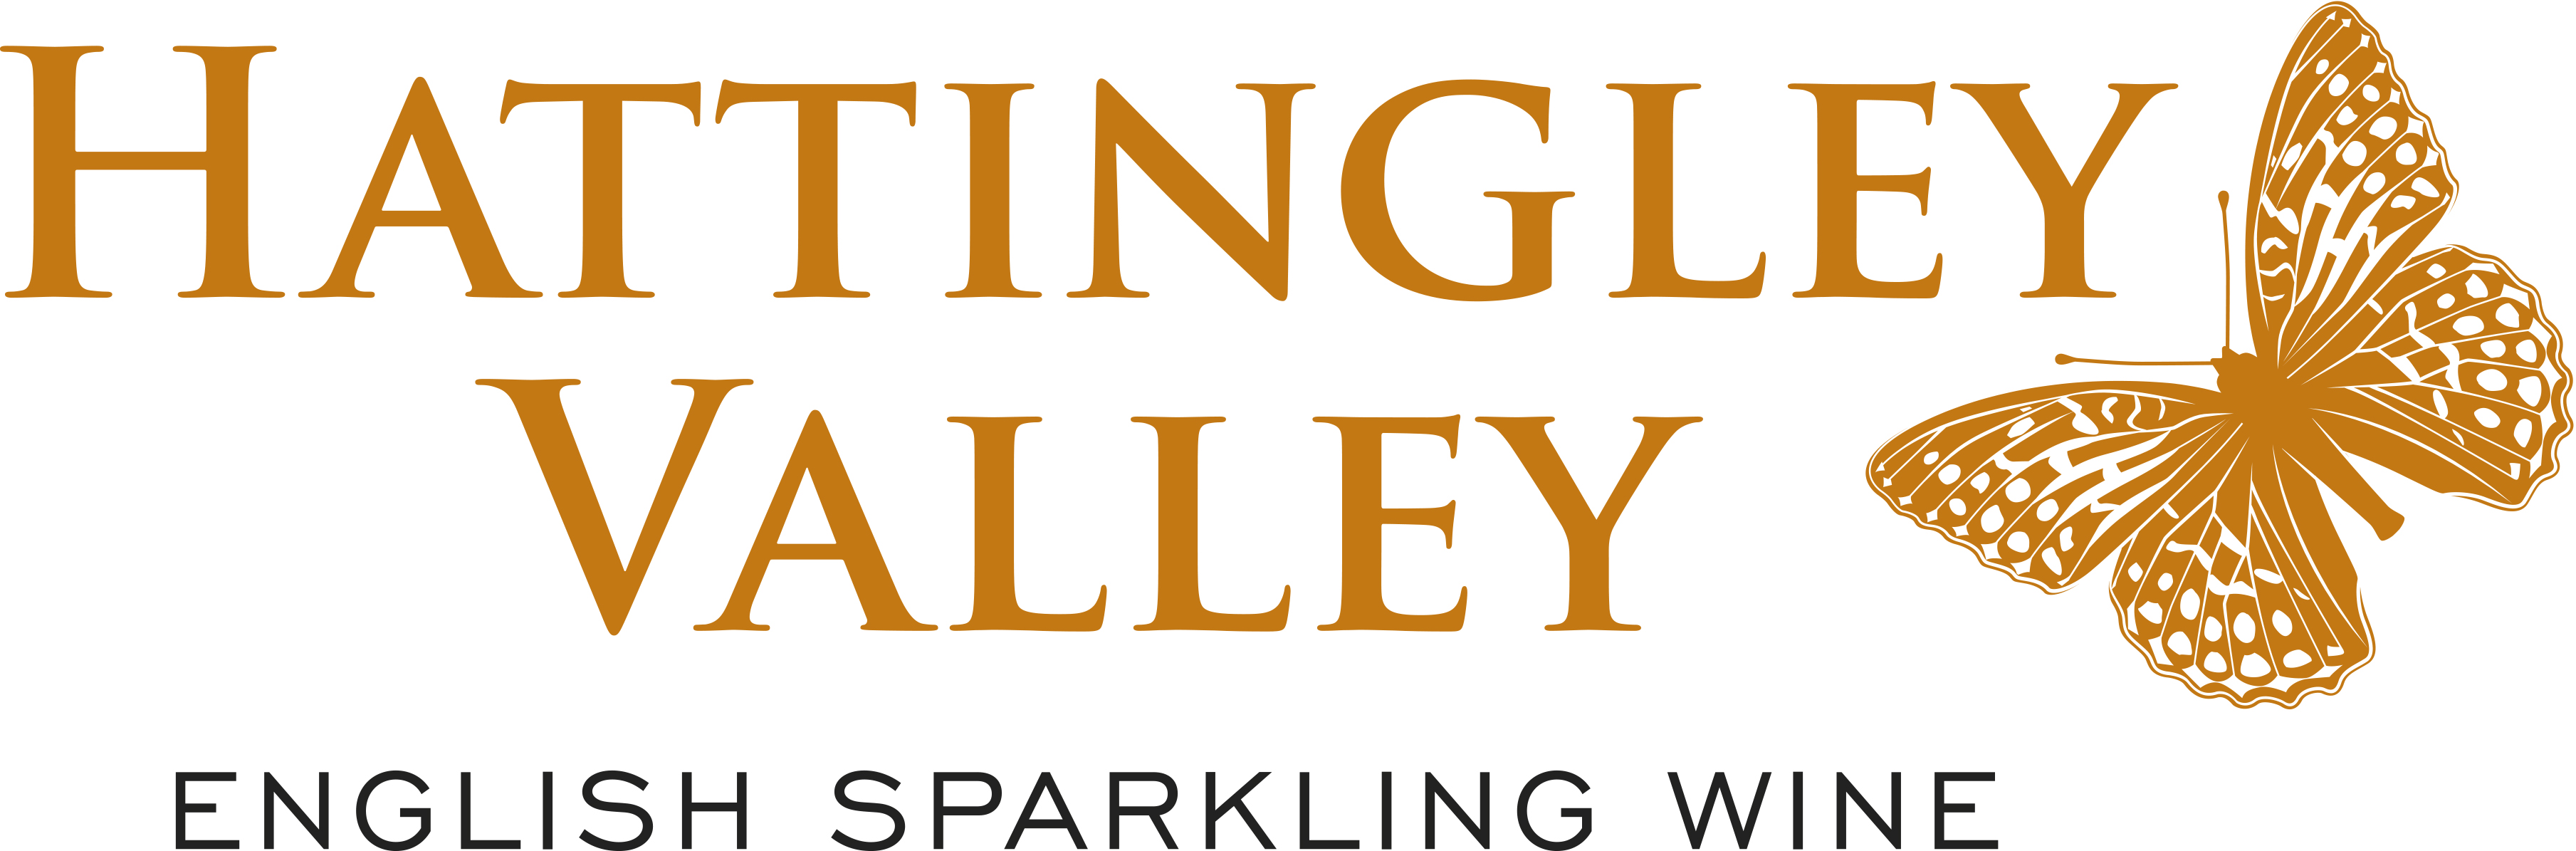 hattingley logo